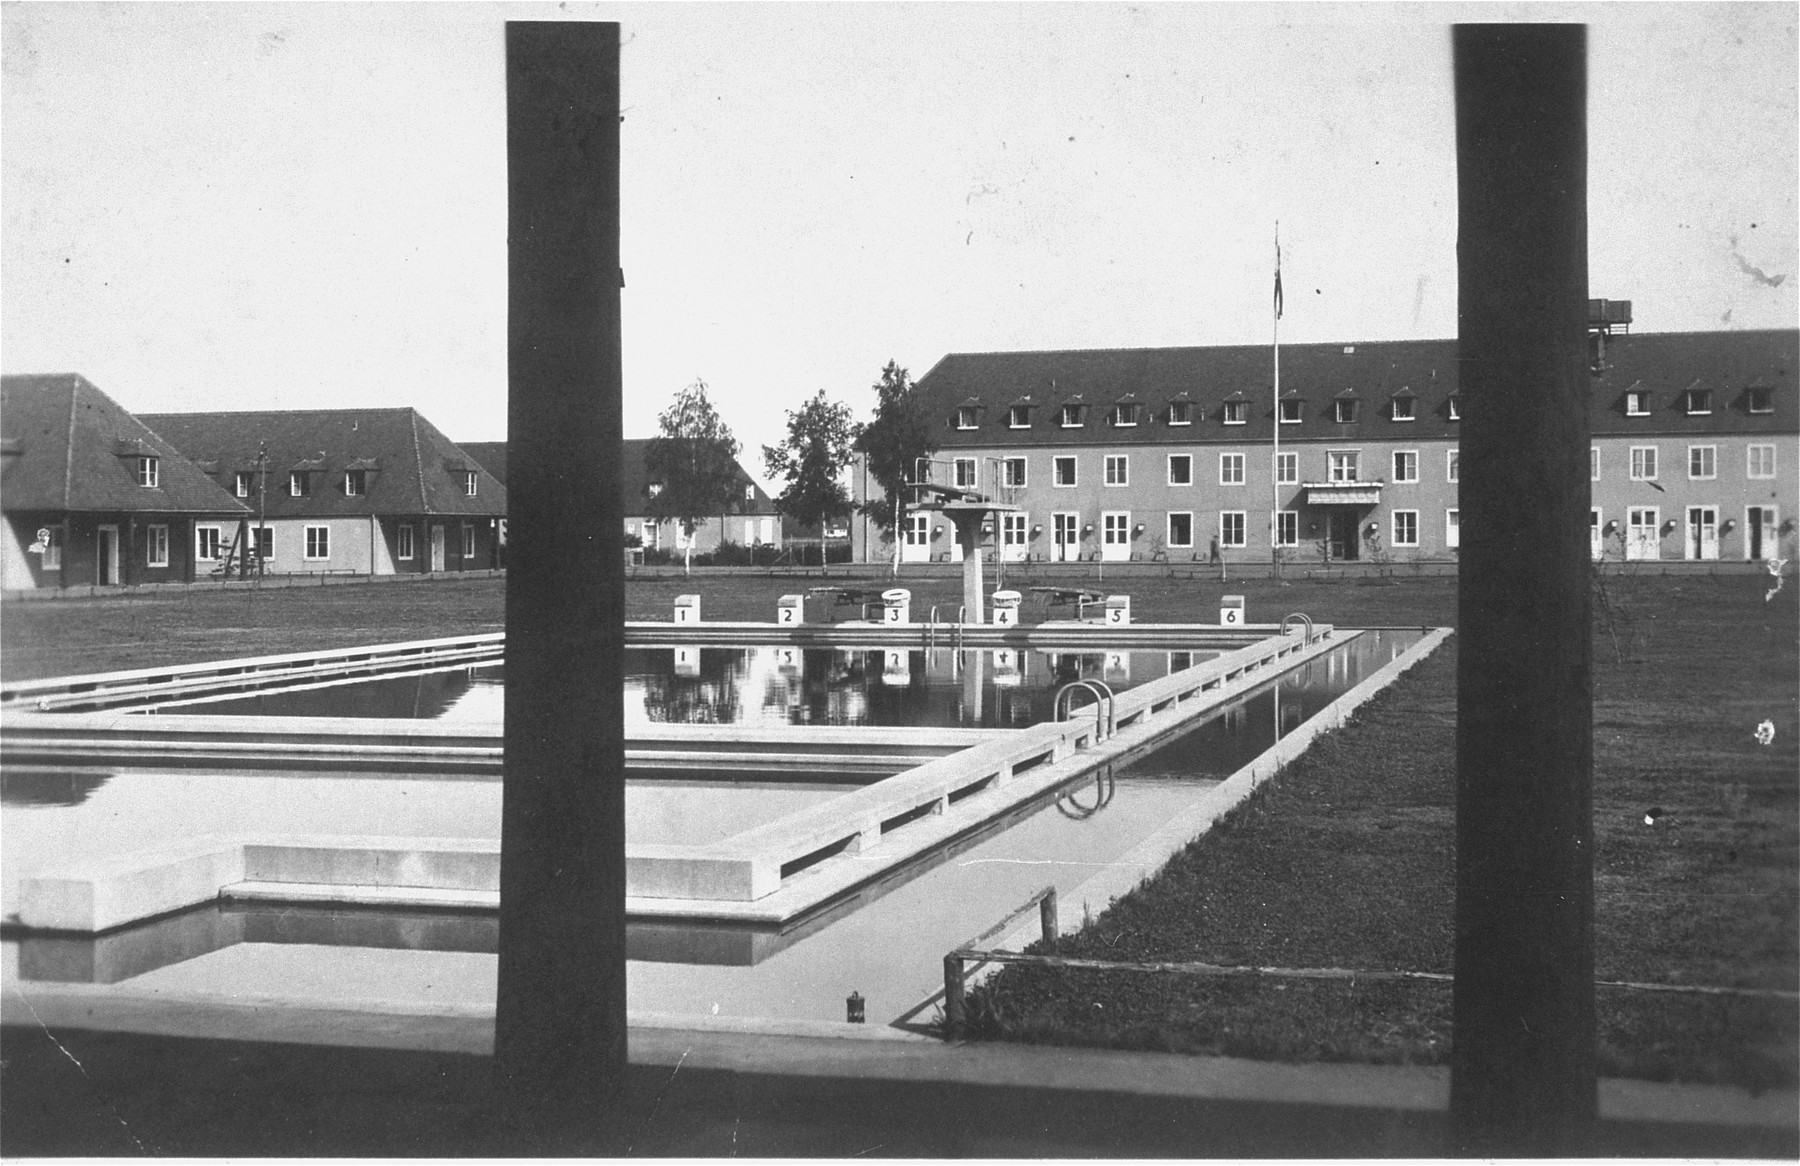 View of the pool on the grounds of the Hitler Youth school in Braunschweig, where Solly Perel was enrolled.